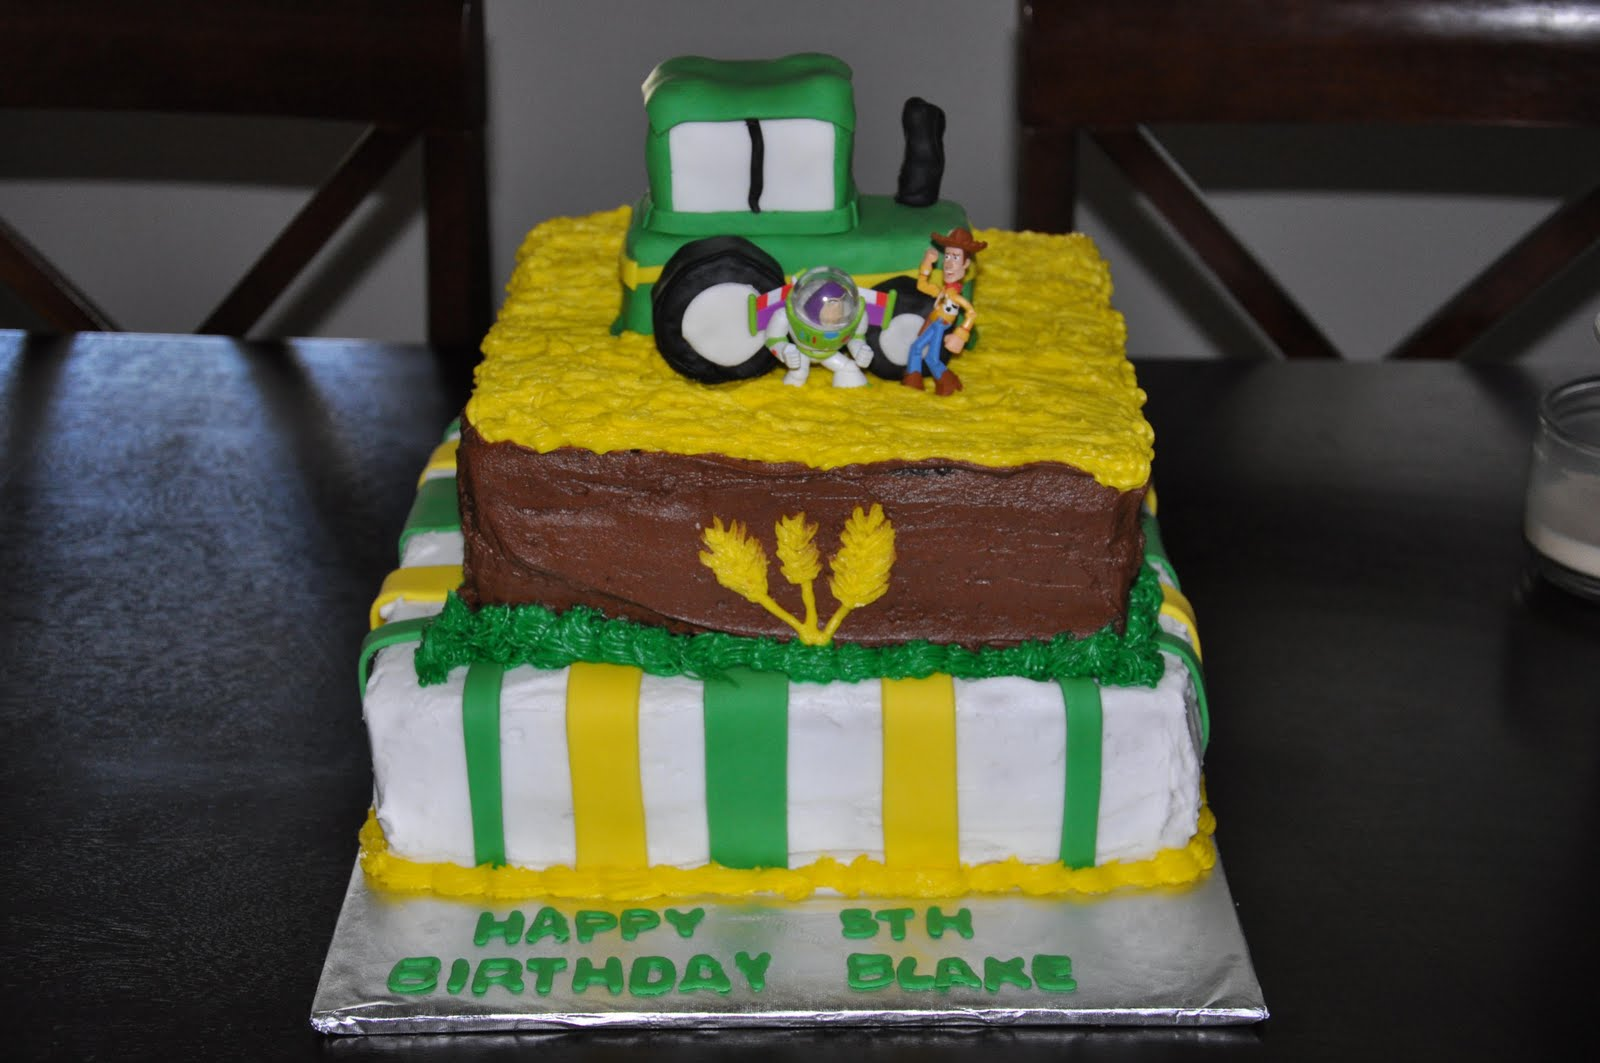 This Is A Two Tiered Tractor Birthday Cake With RKT Covered In Fondant On Top It Was Combined And Toy Story Themed Party So The Mom